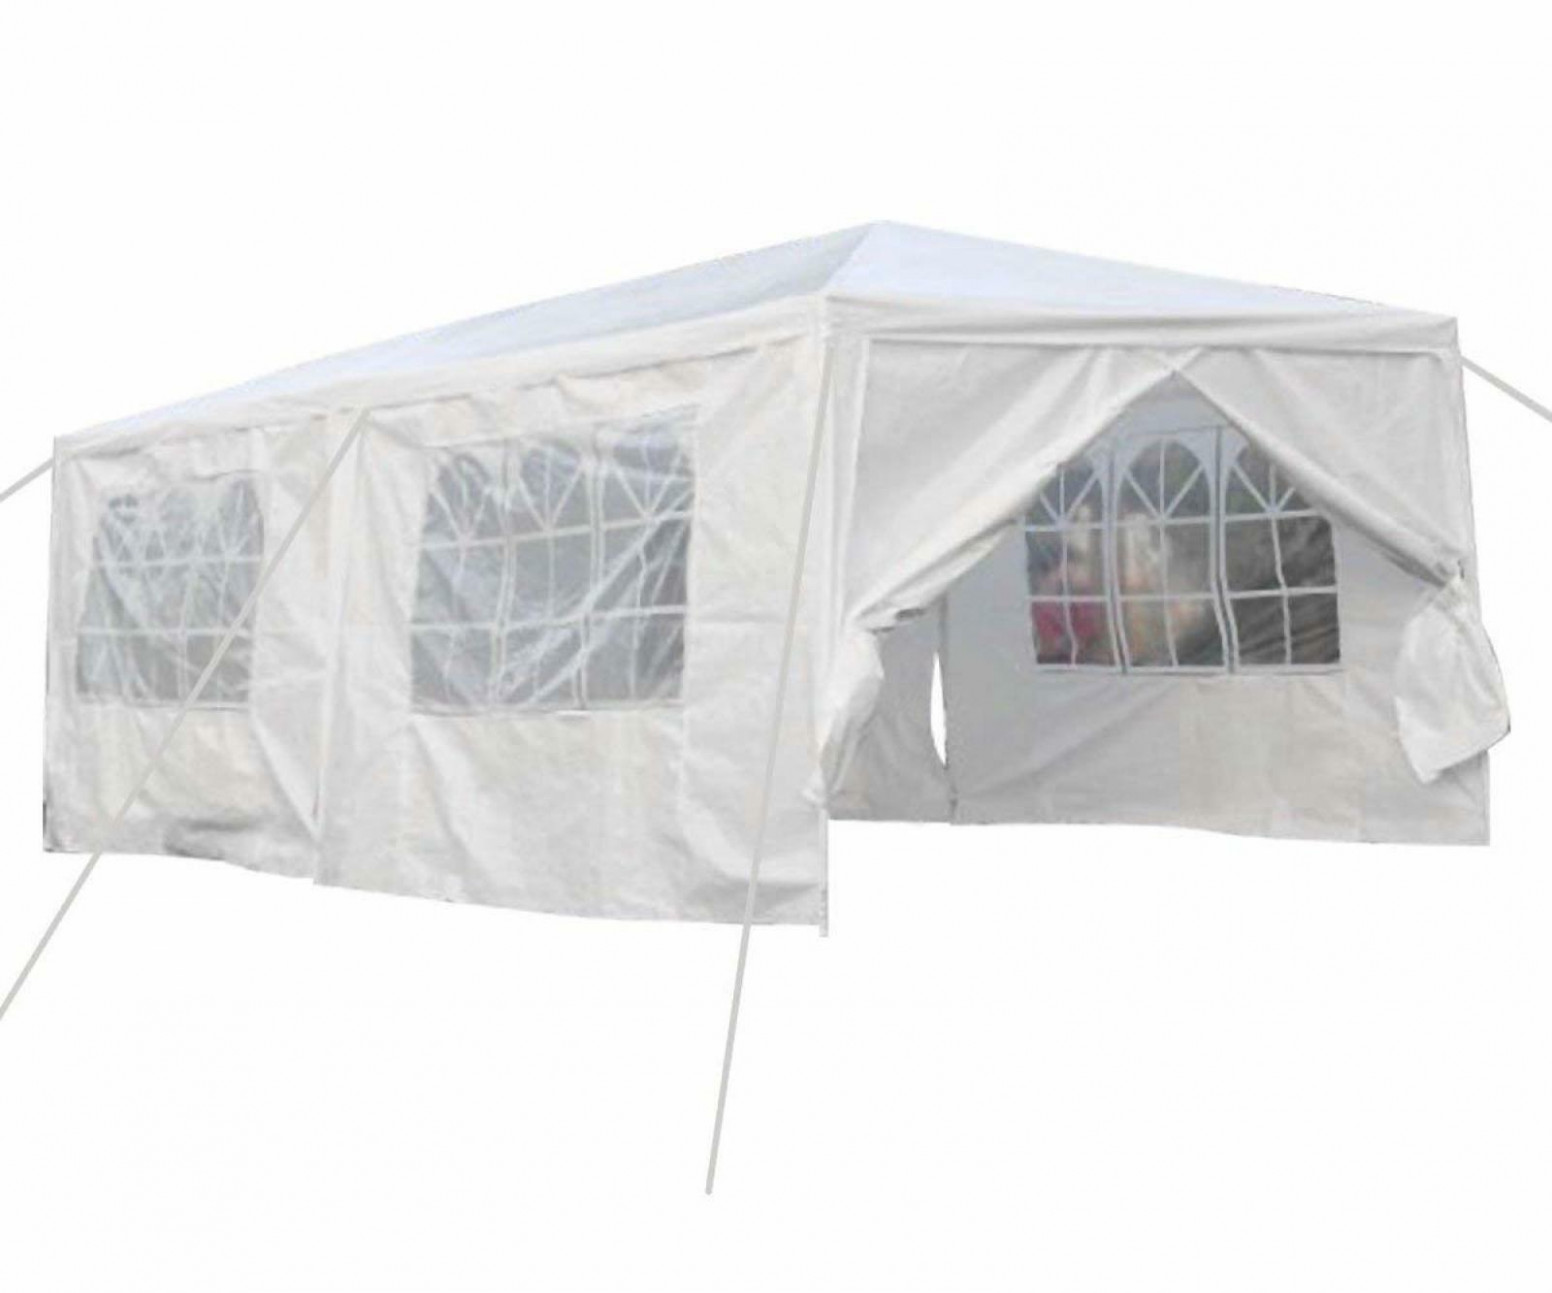 Details About 8 X 8 Ft Carport Canopy Tent With Sidewalls White Cover Car Portable Garage Black Carport Canopy